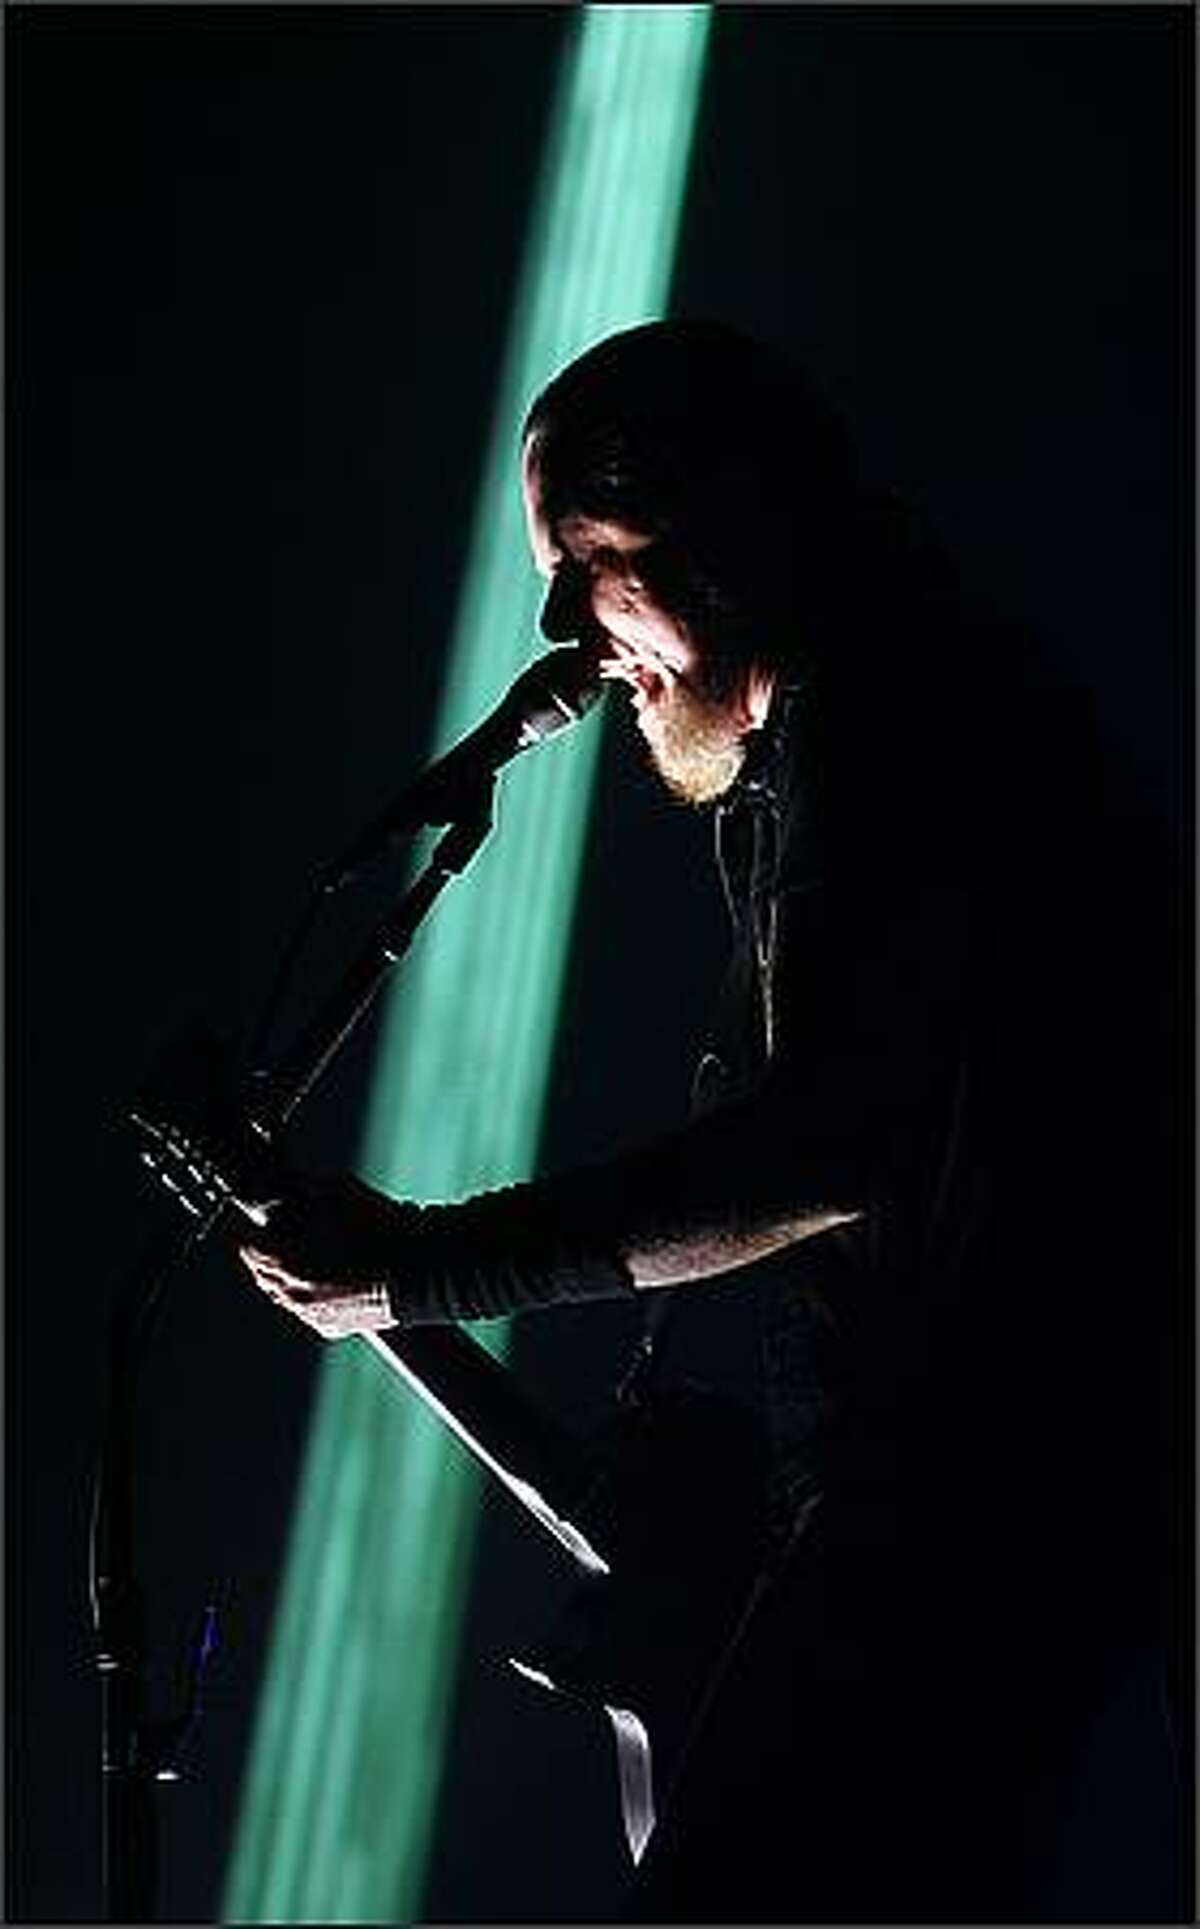 Metallica's lead vocalist James Hetfield sings silhouetted against a sliver of laser light at KeyArena in Seattle during Monday's concert.